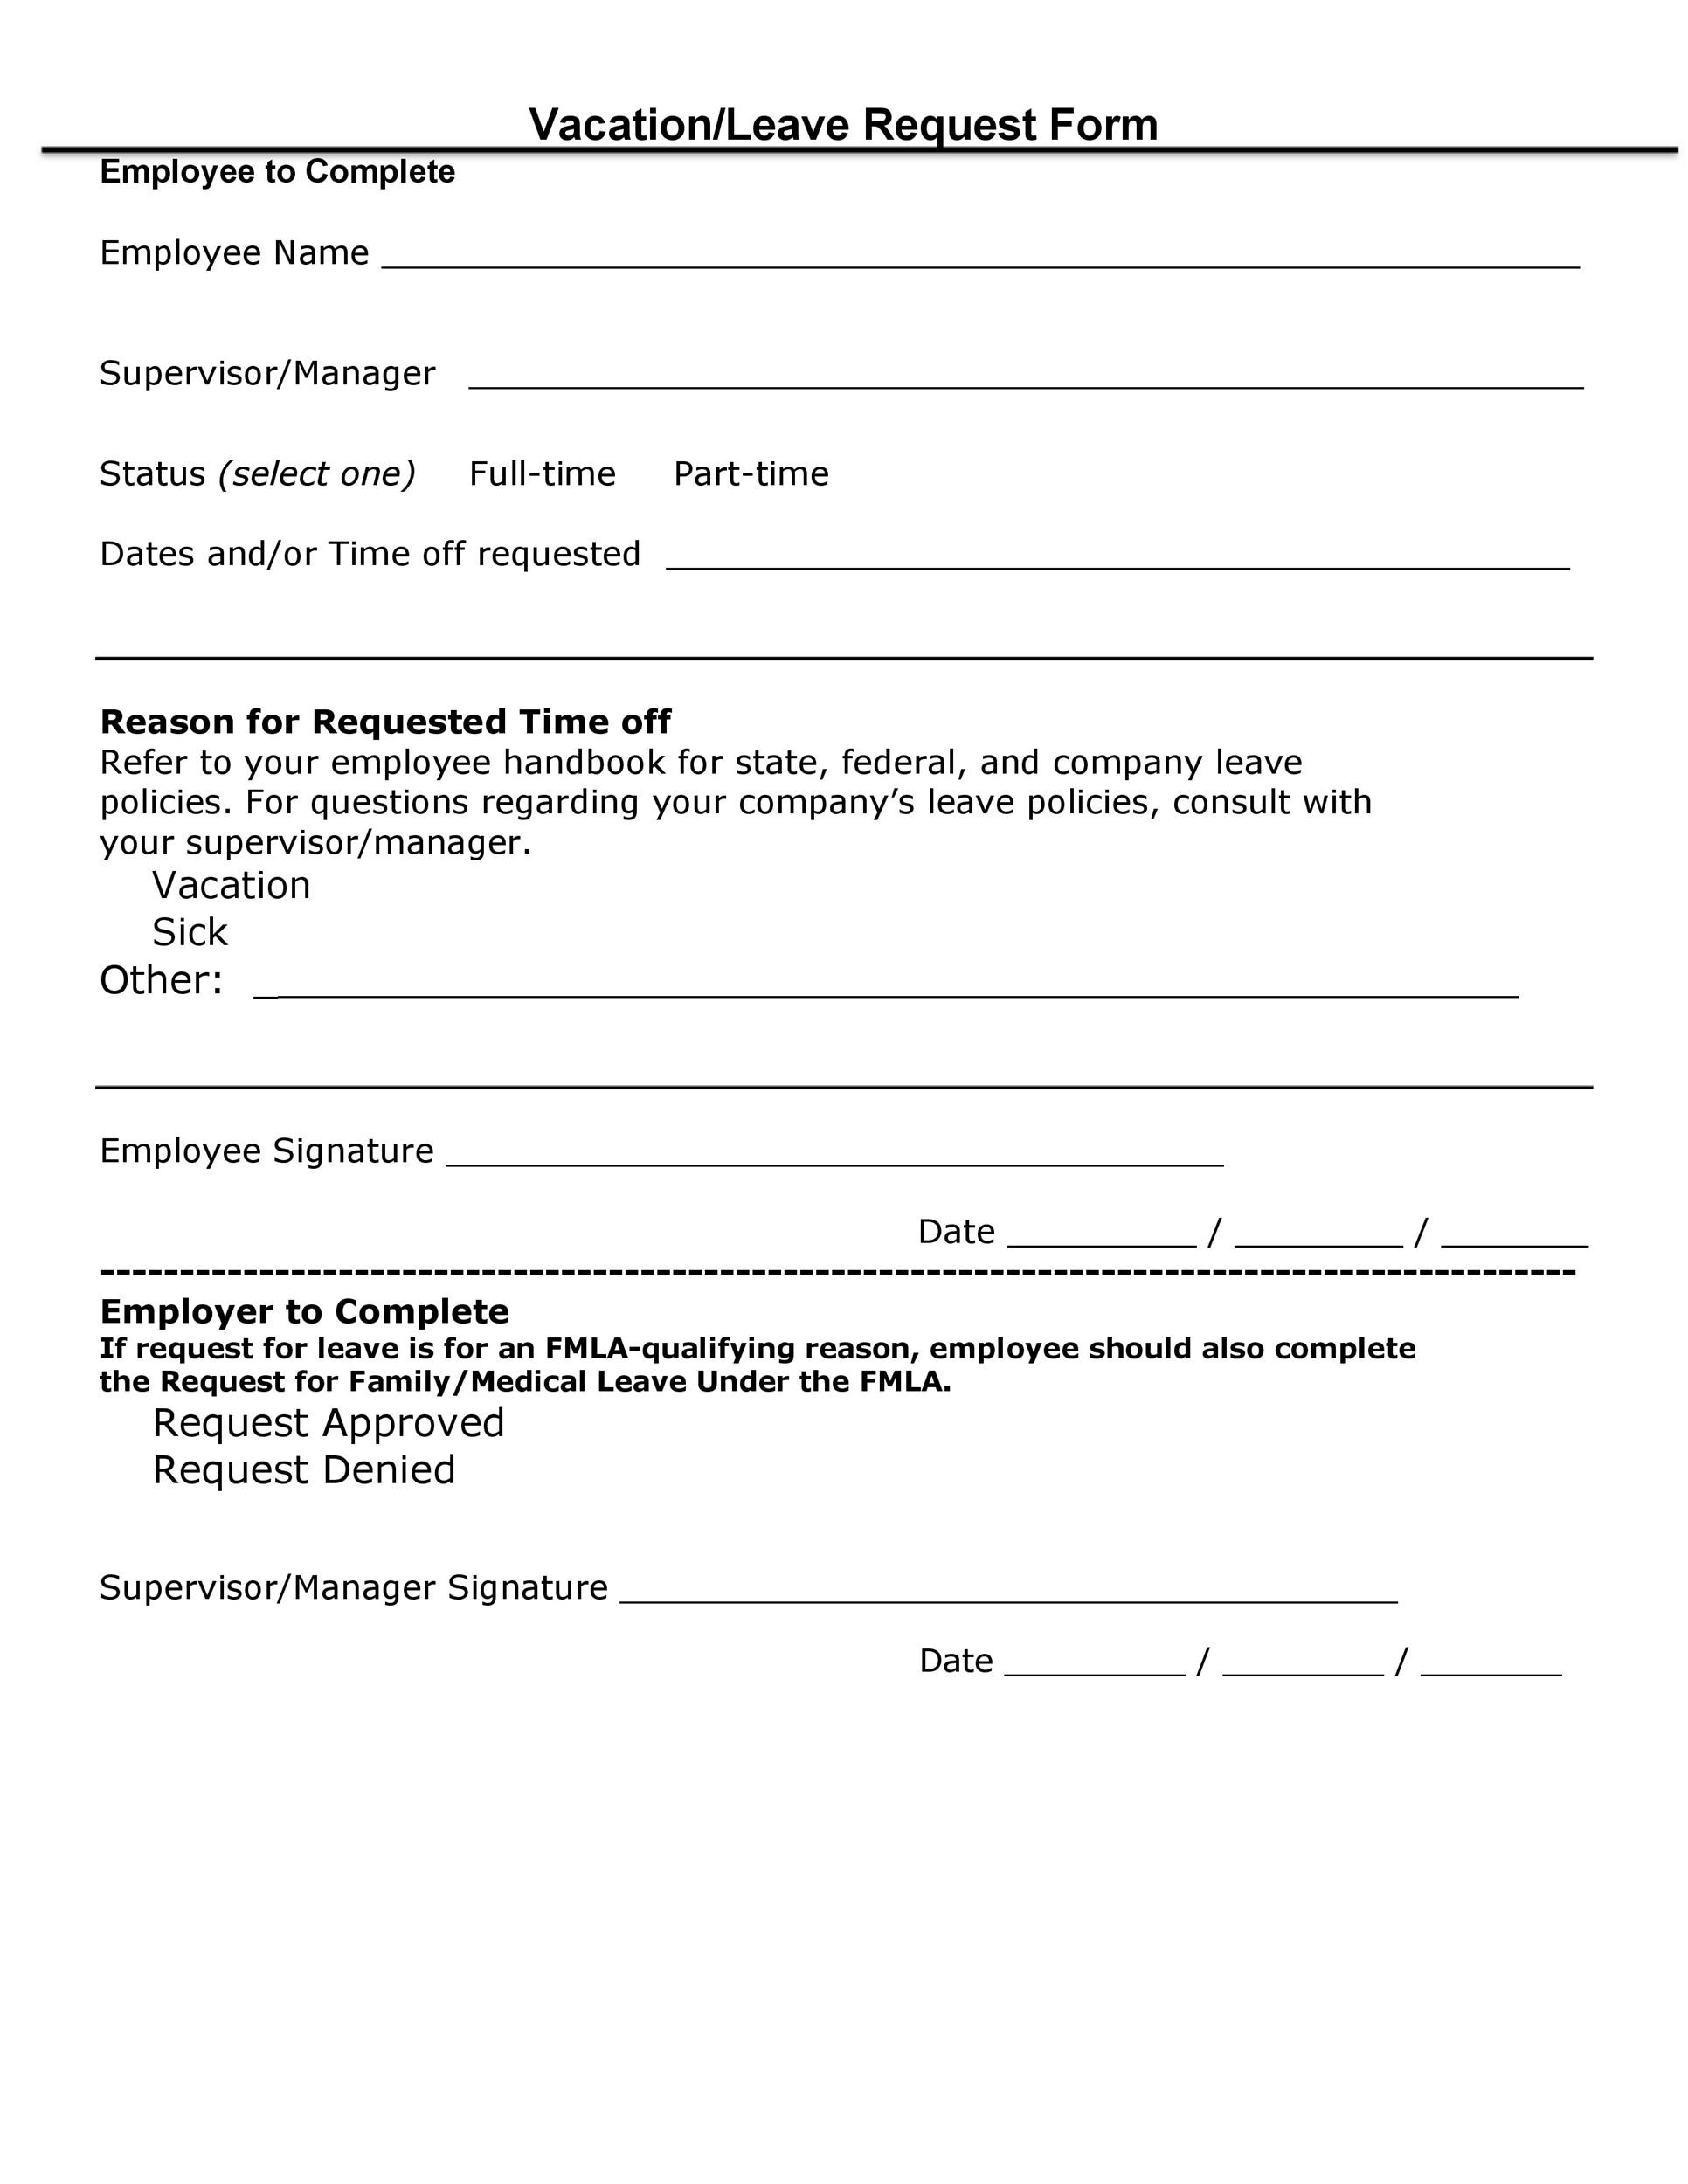 Free vacation request form 46